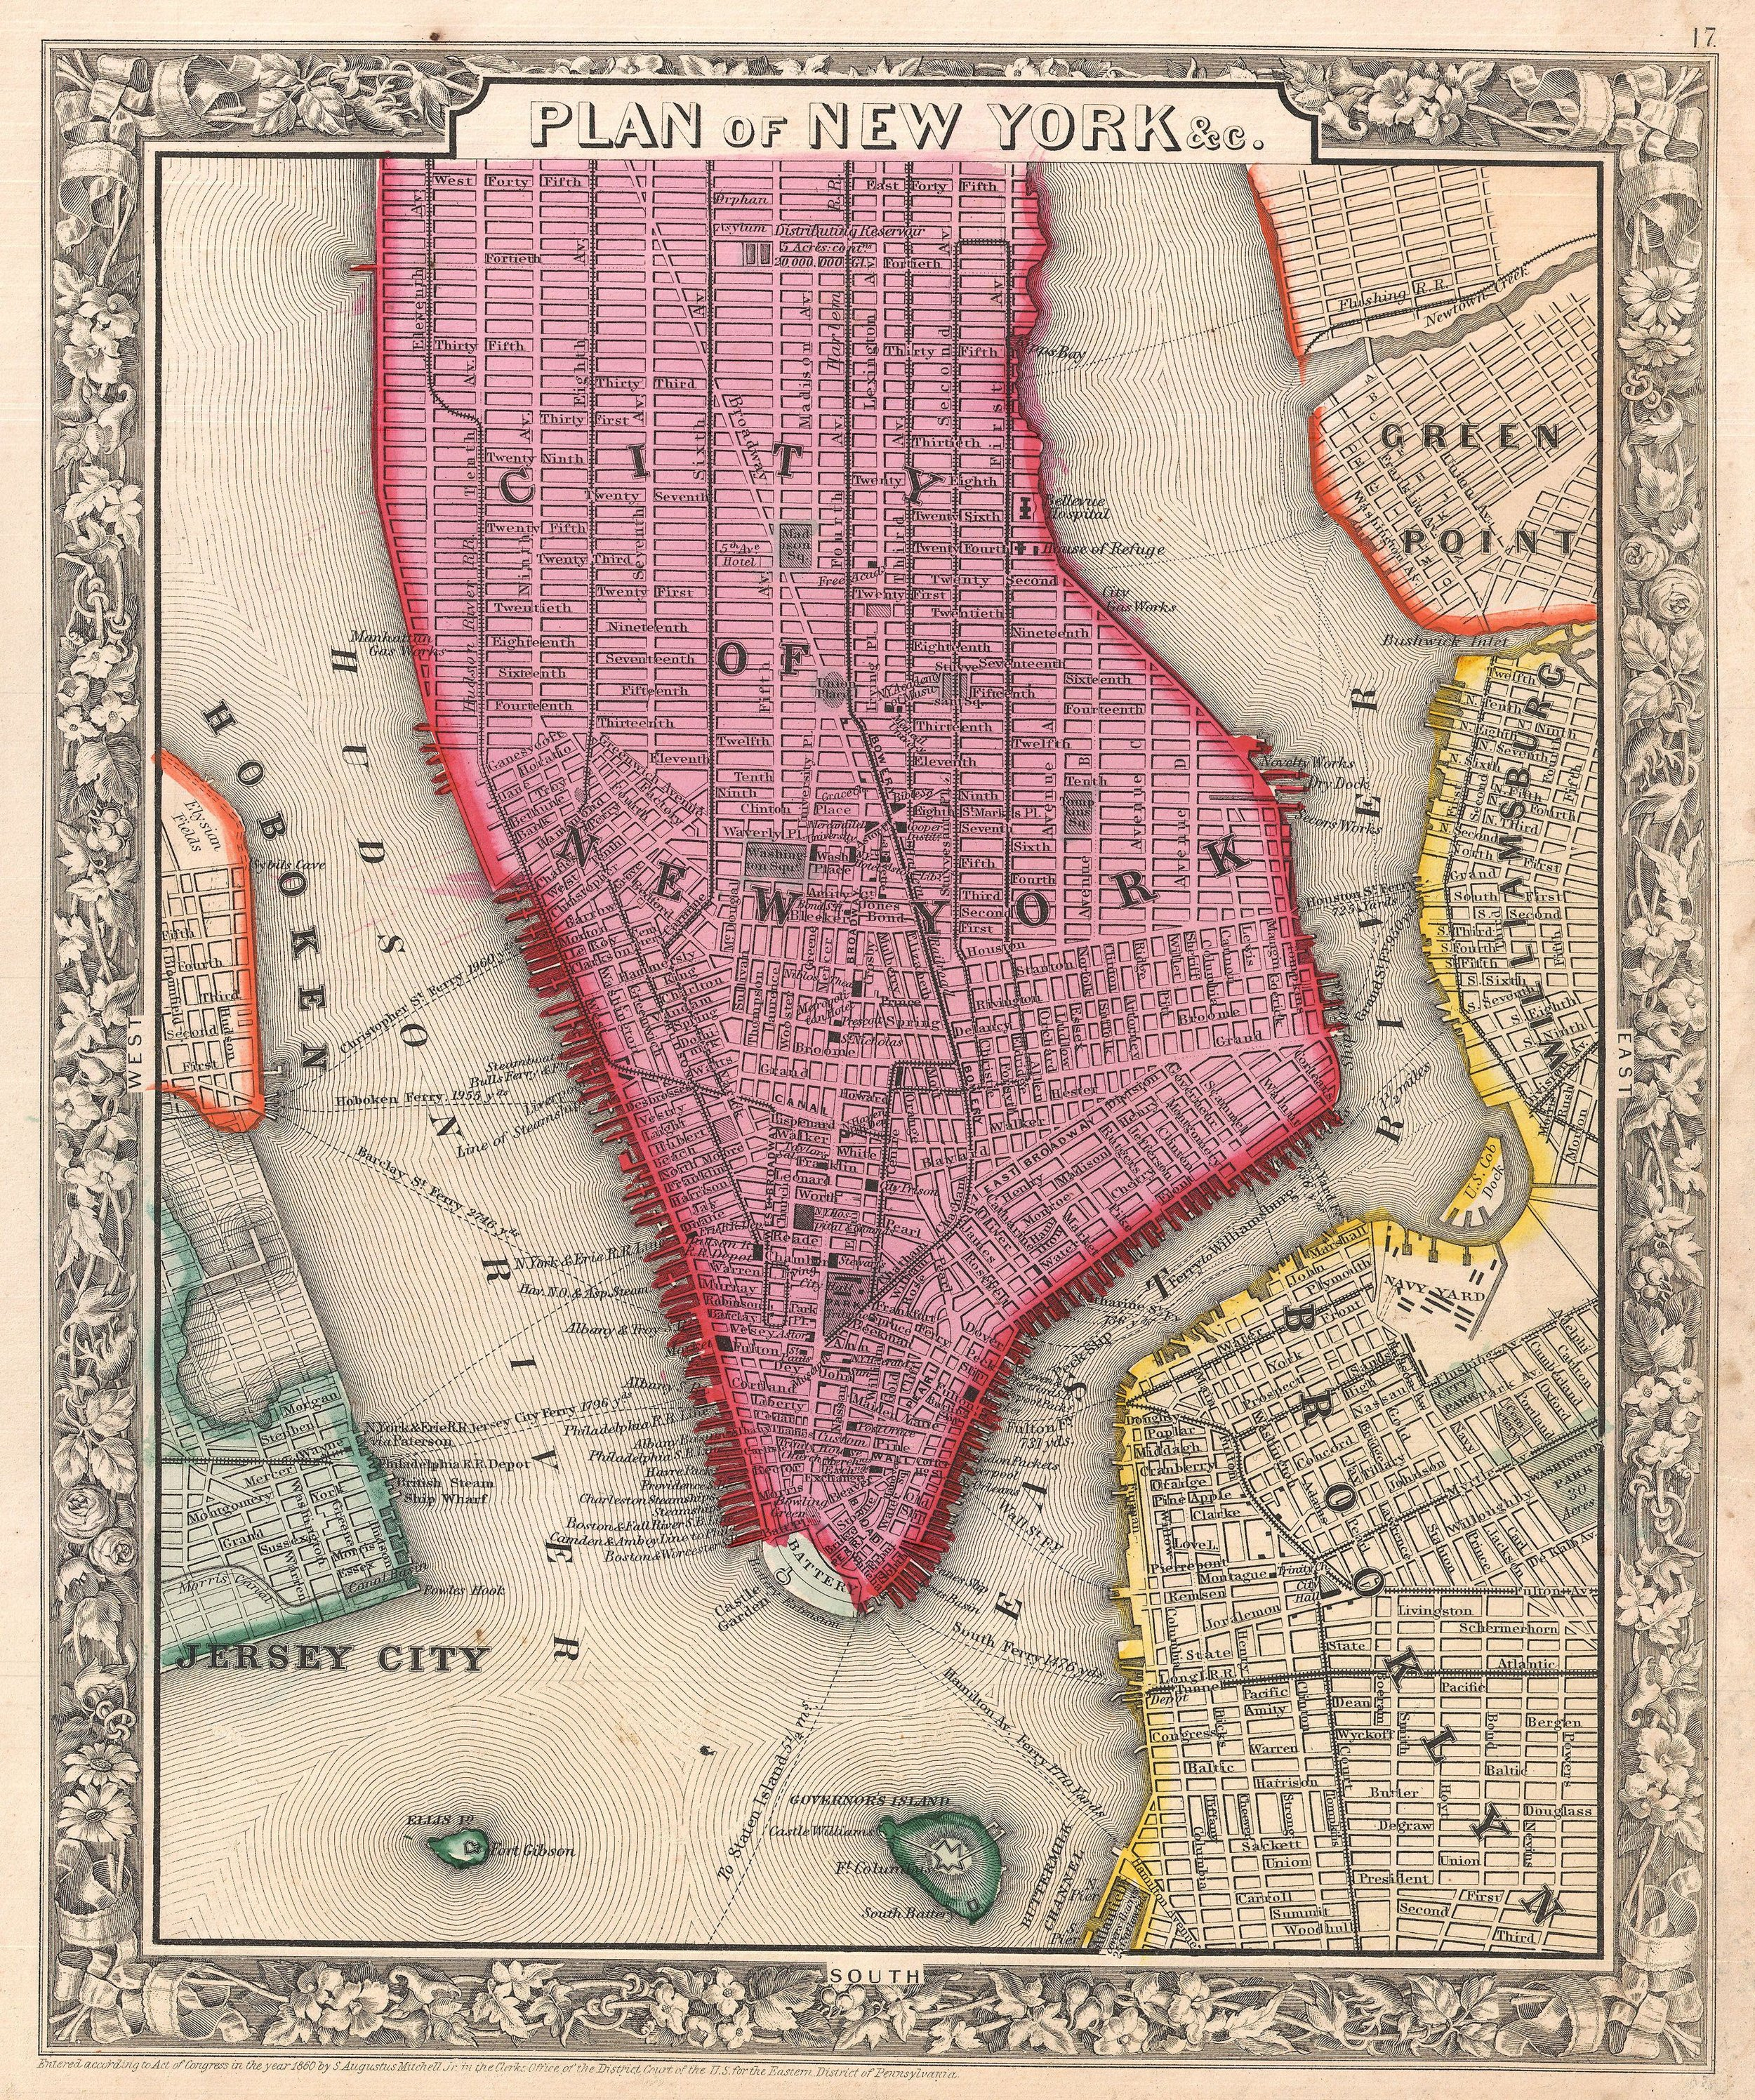 NewYork-1860_Mitchell_Map_of_New_York_City,_New_York_(first_edition)_-_Geographicus_-_NYC-mitchell-1860.jpg